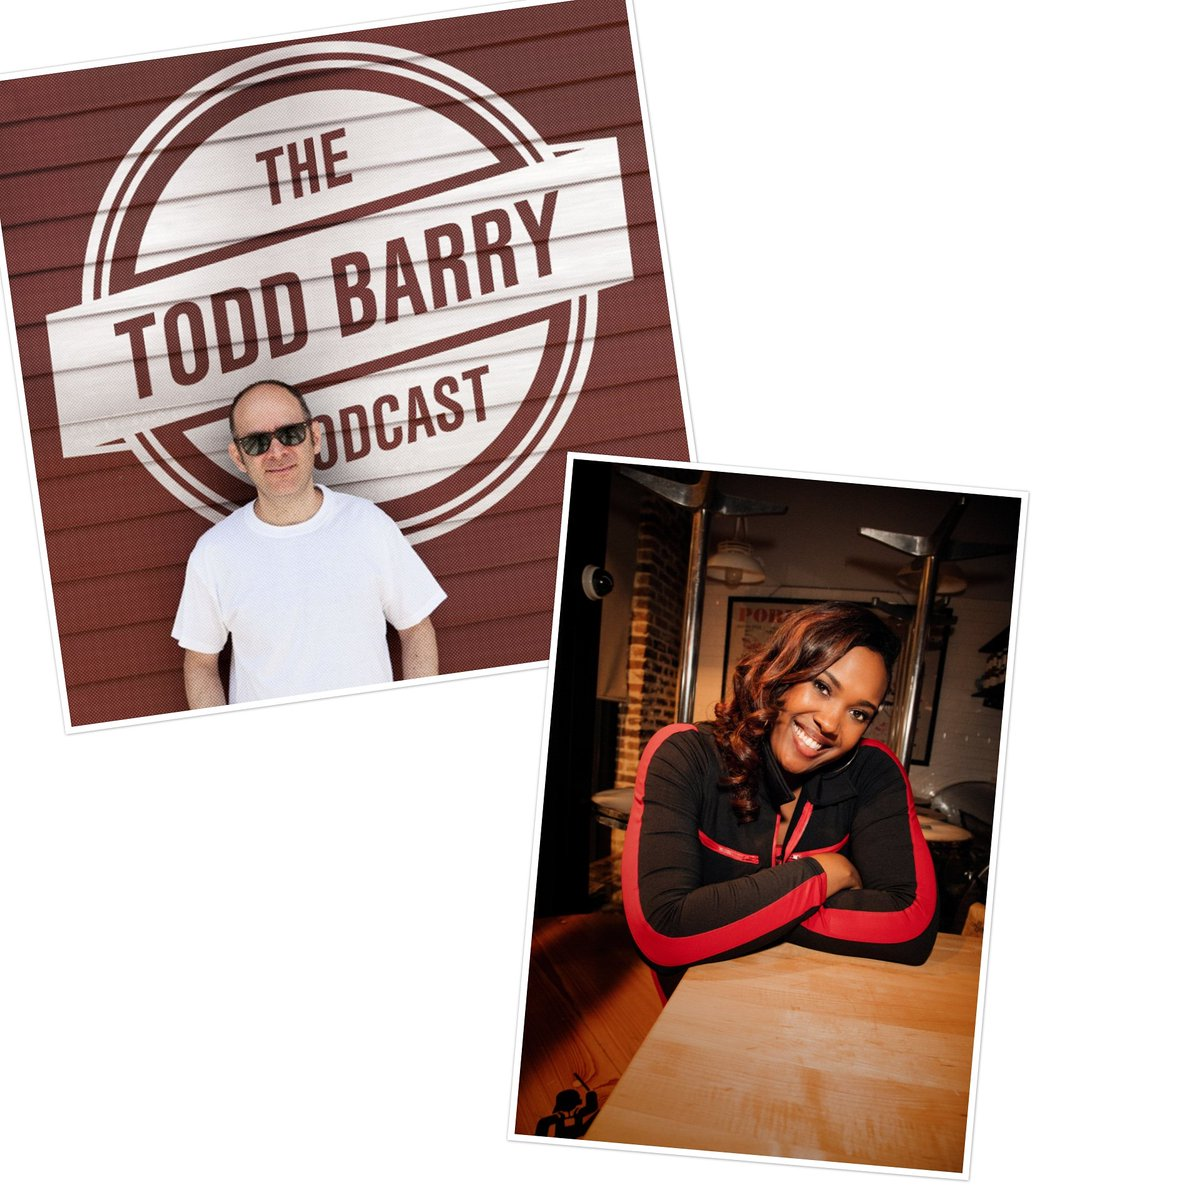 Check out the latest @ToddBarryPdcast with MIA JACKSON  (@miacomedy)! We talk about laundromat etiquette and identity theft! Subscribe on @ApplePodcasts!